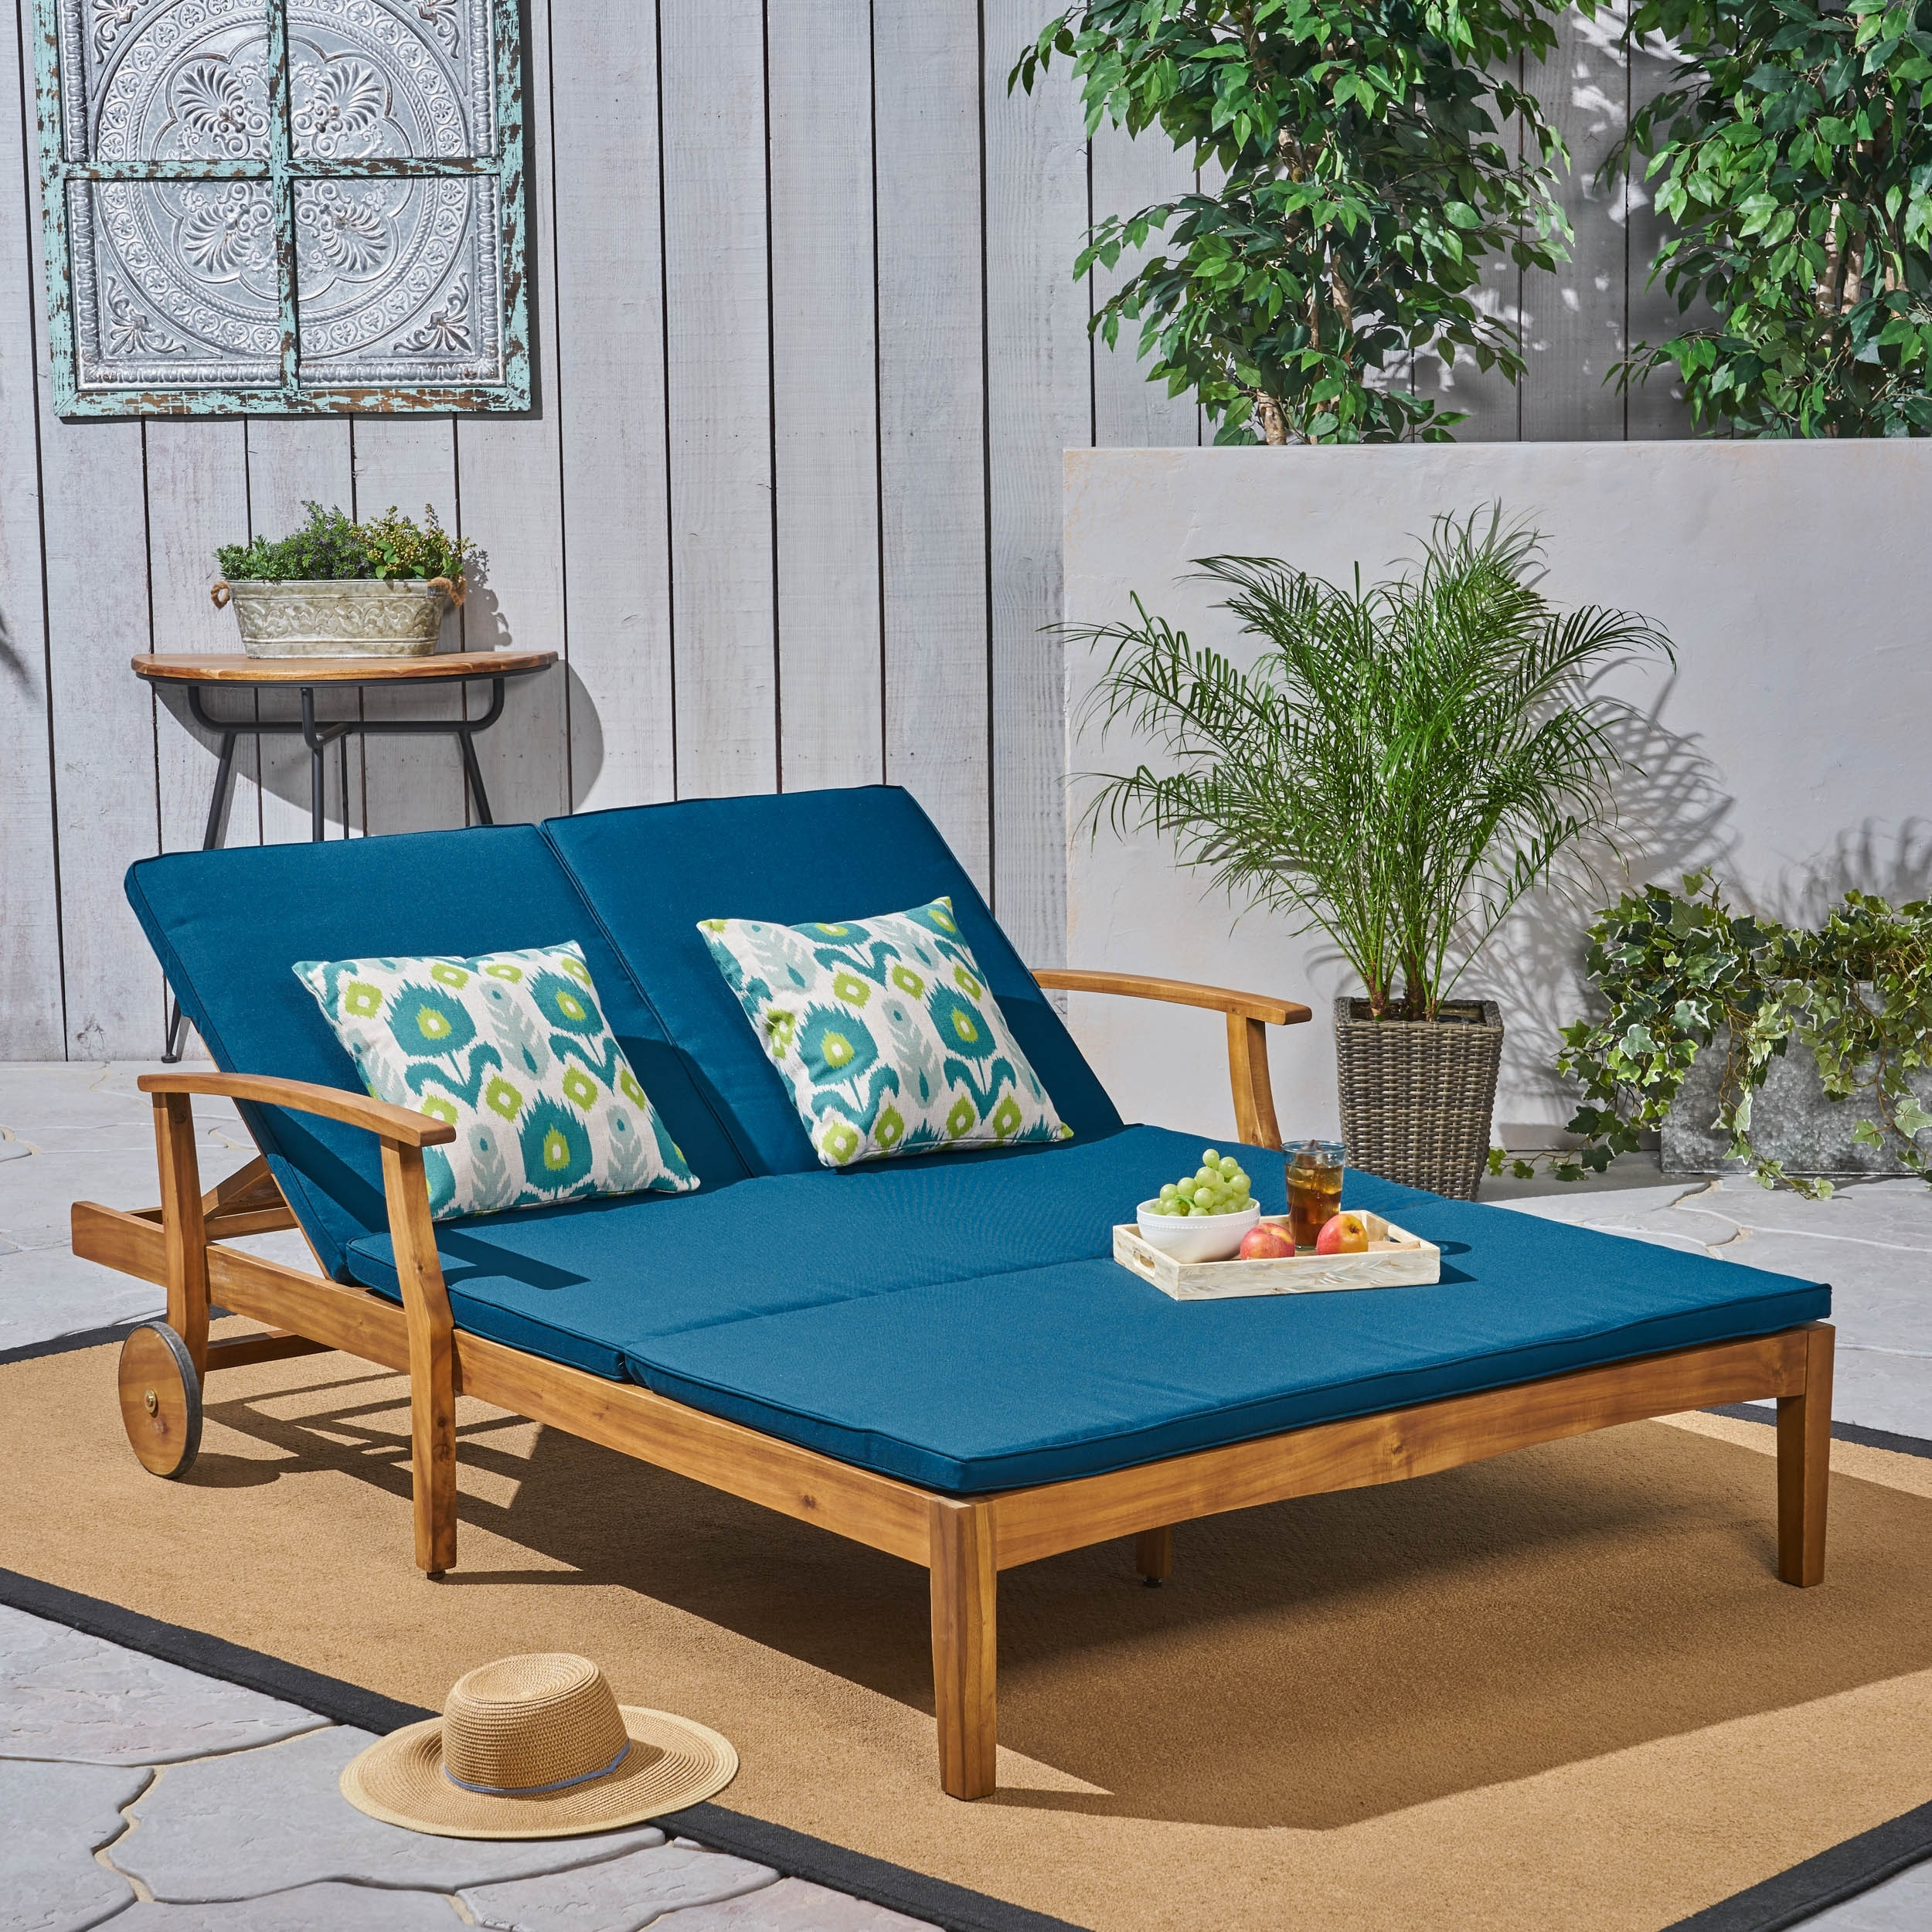 Perla Outdoor Wood Double Chaise Lounge By Christopher Knight Home Overstock 24196726